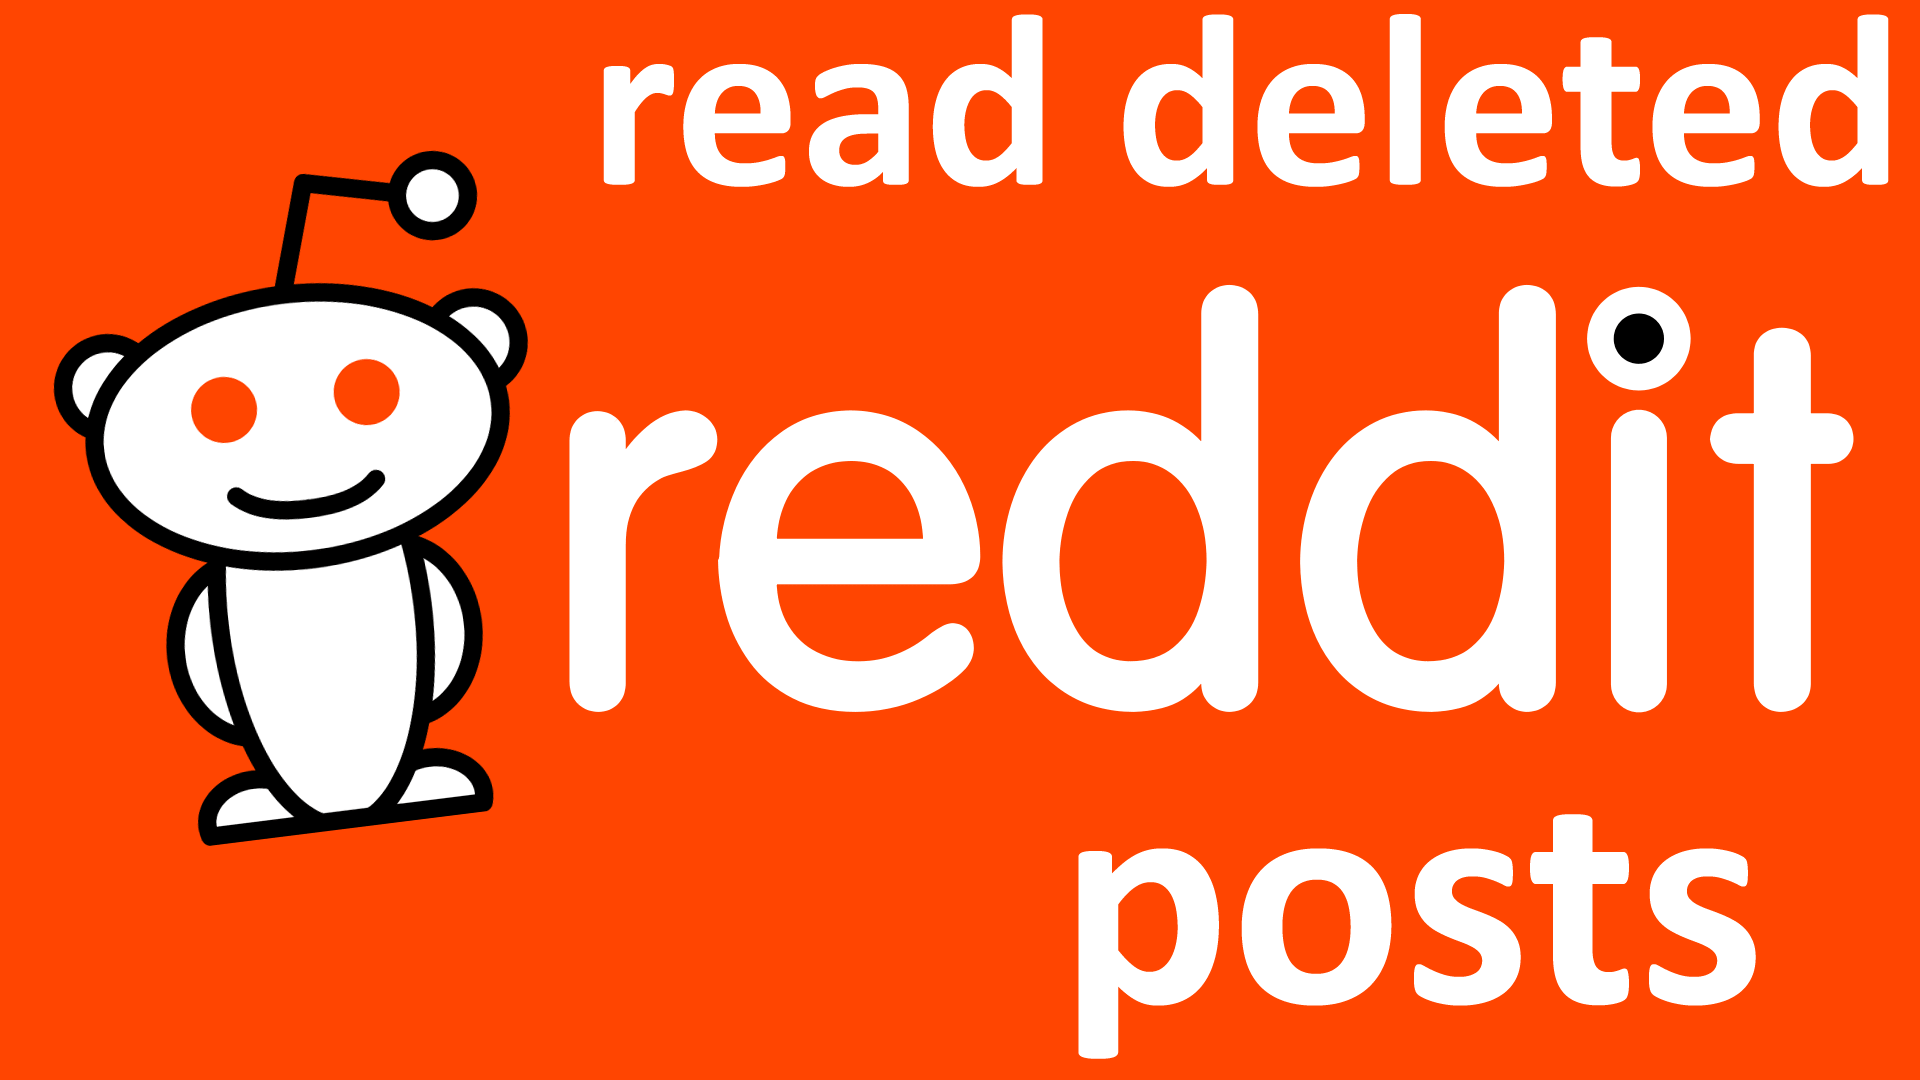 How to Read Deleted Reddit Posts